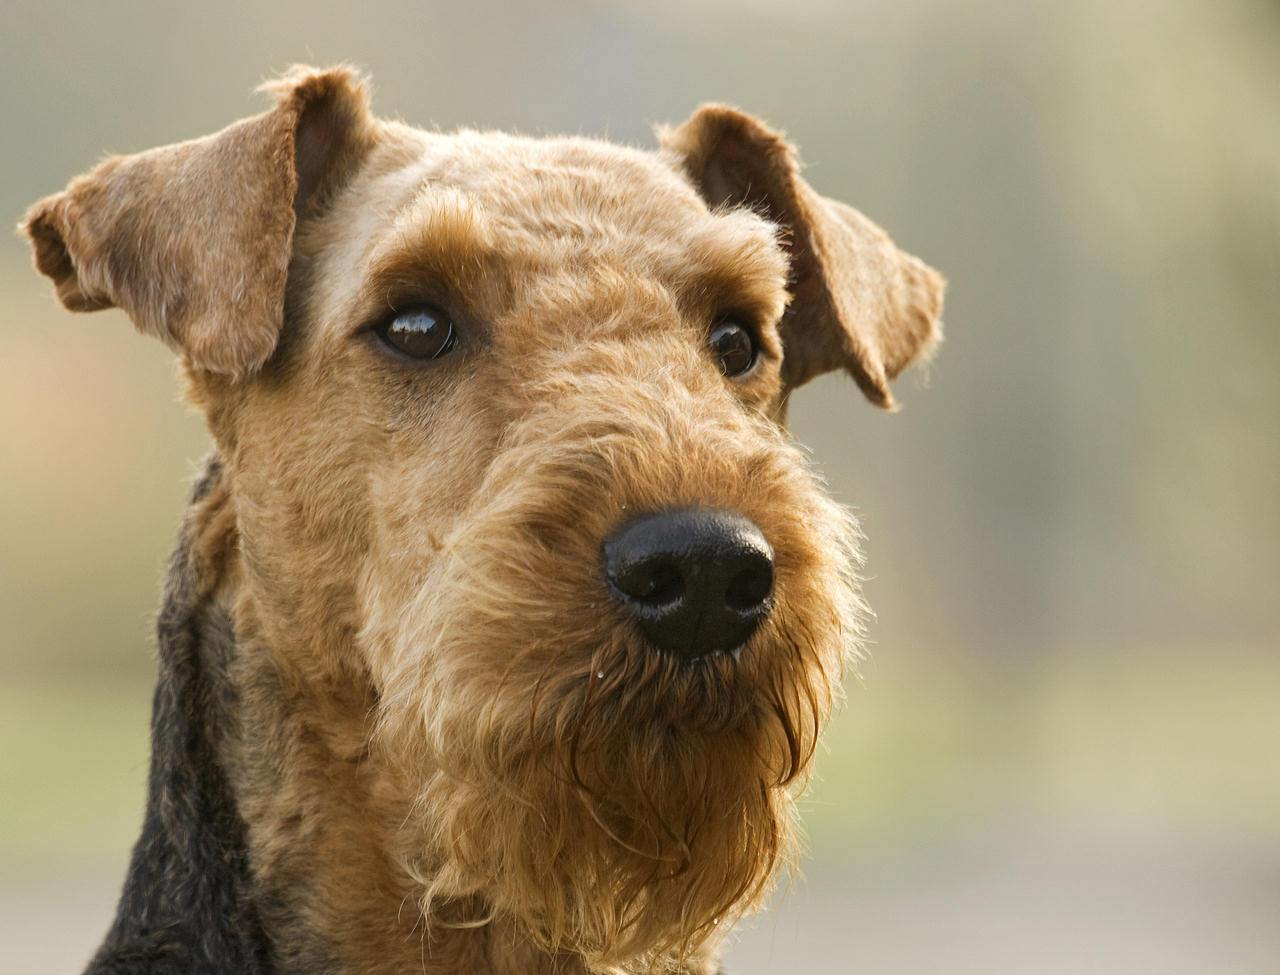 Thoughtful Airedale Terrier wallpaper